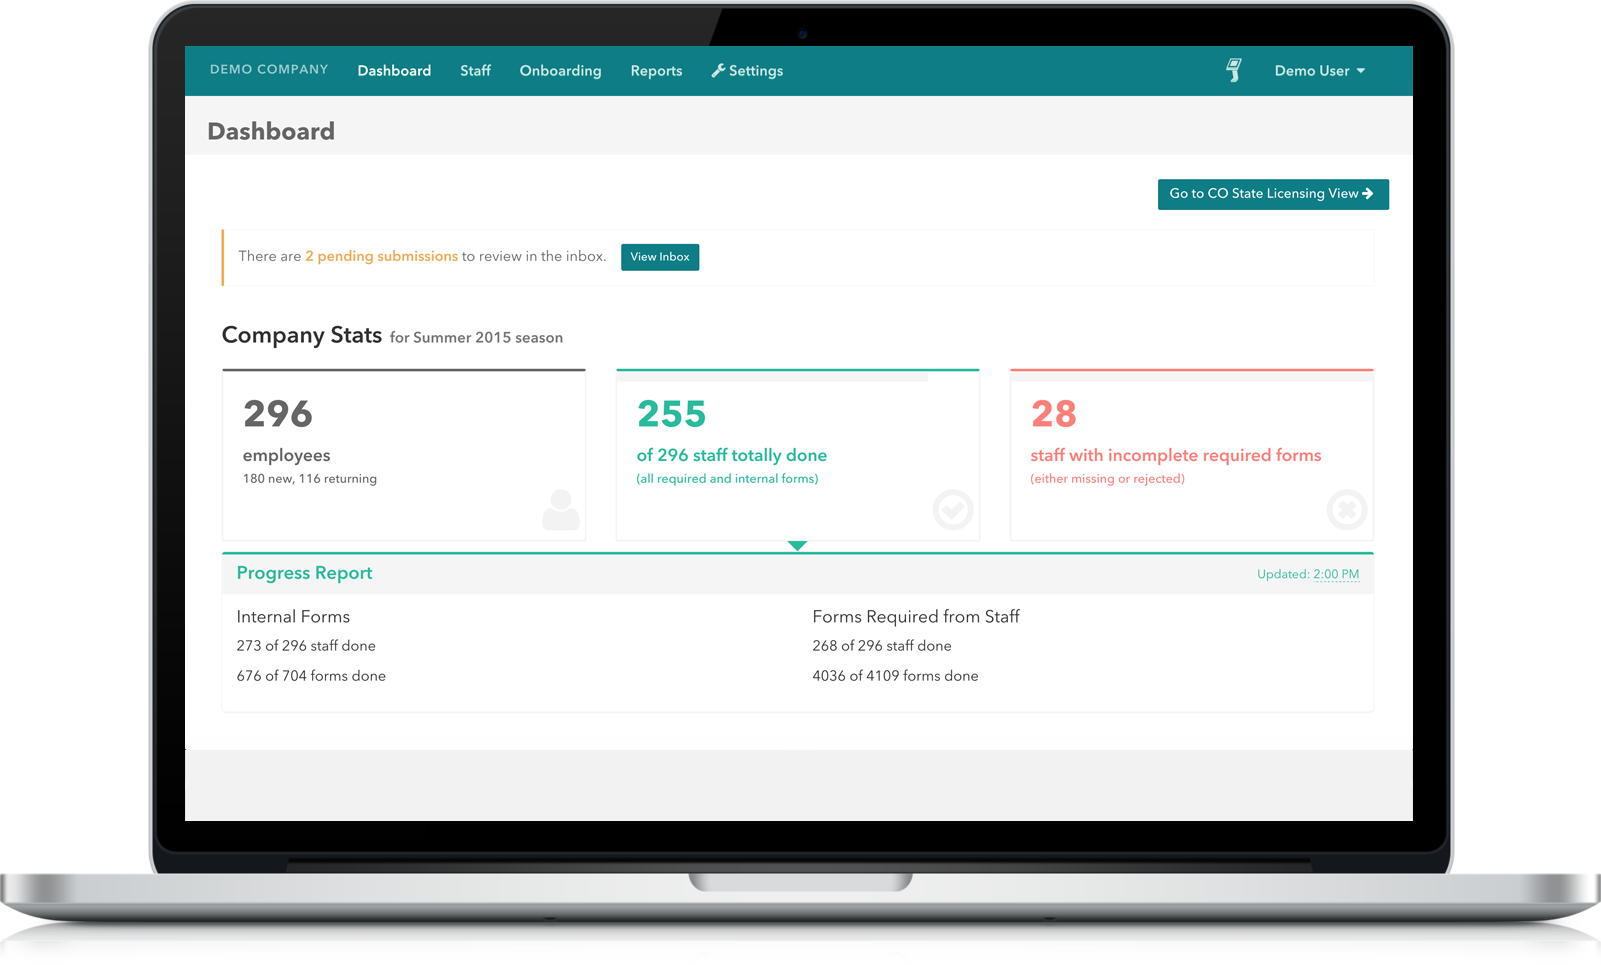 Dashboard showing company stats for a demo company